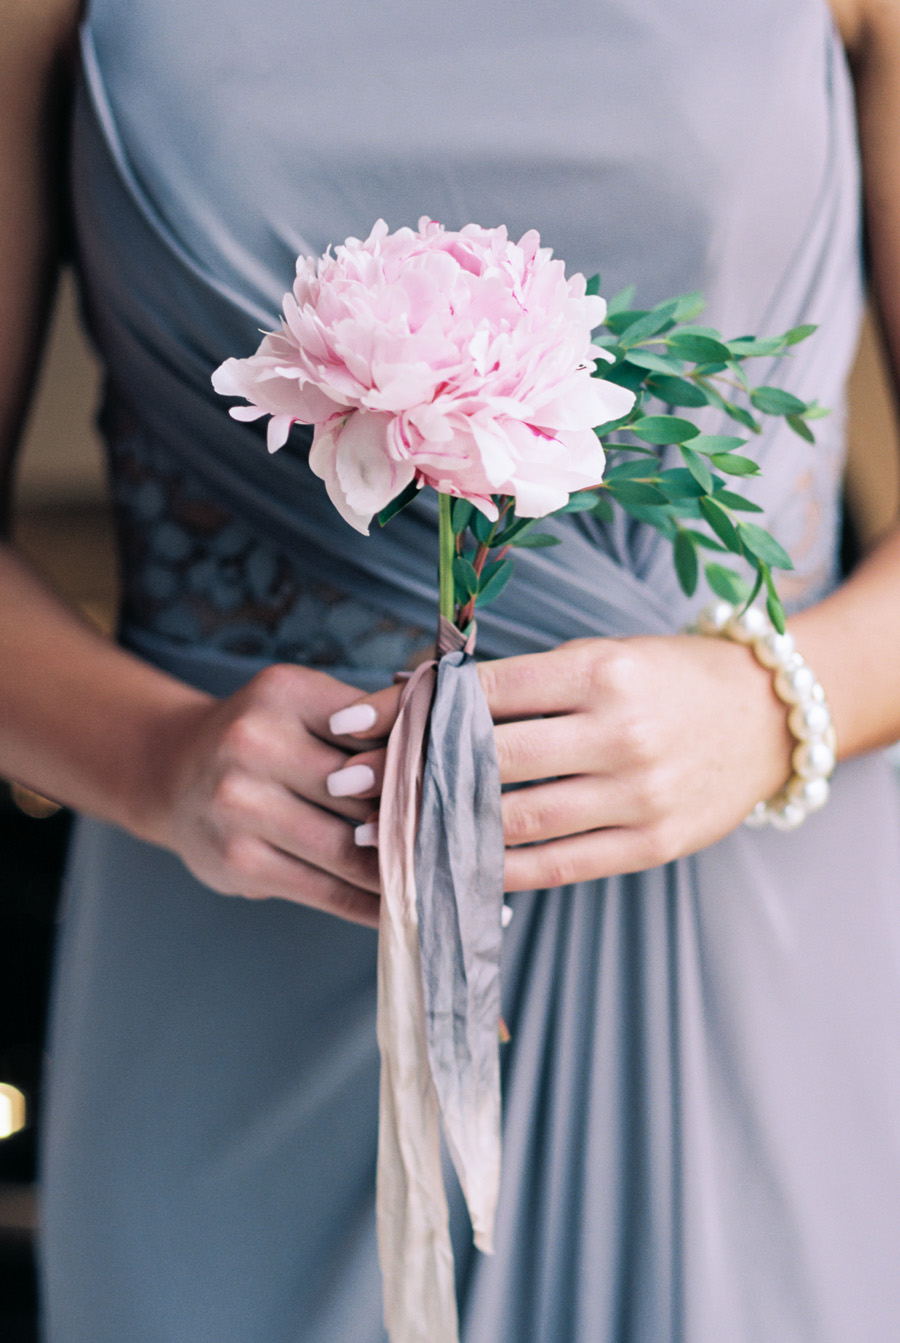 Zuzu's petals and events bridesmaids bouquet.